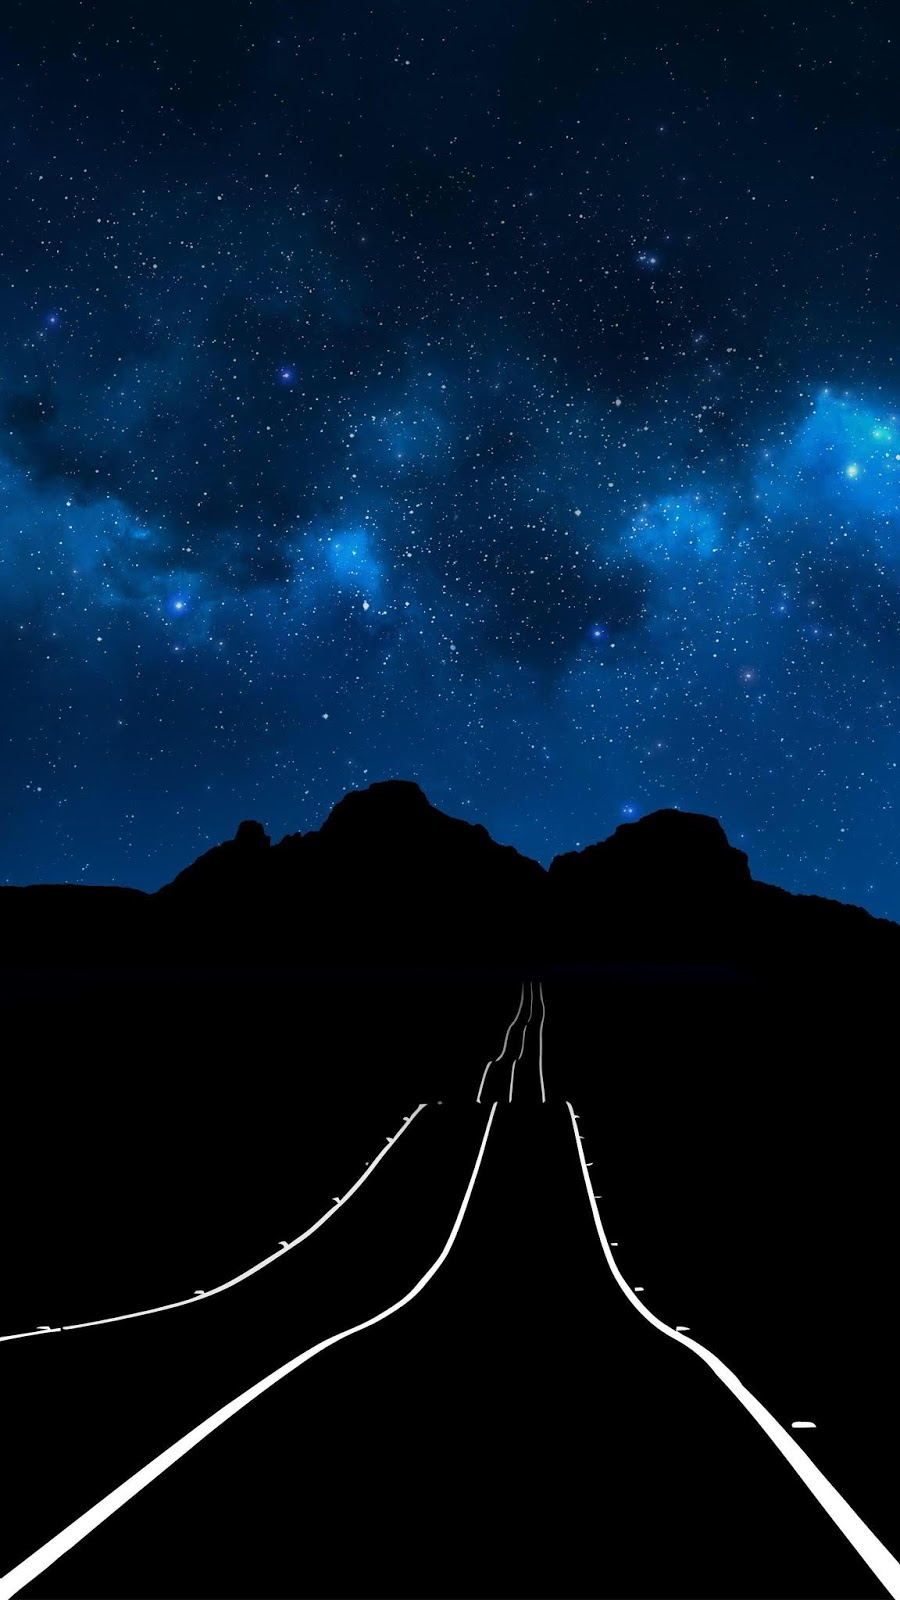 My current wallpaper, looks great on an Iphone X